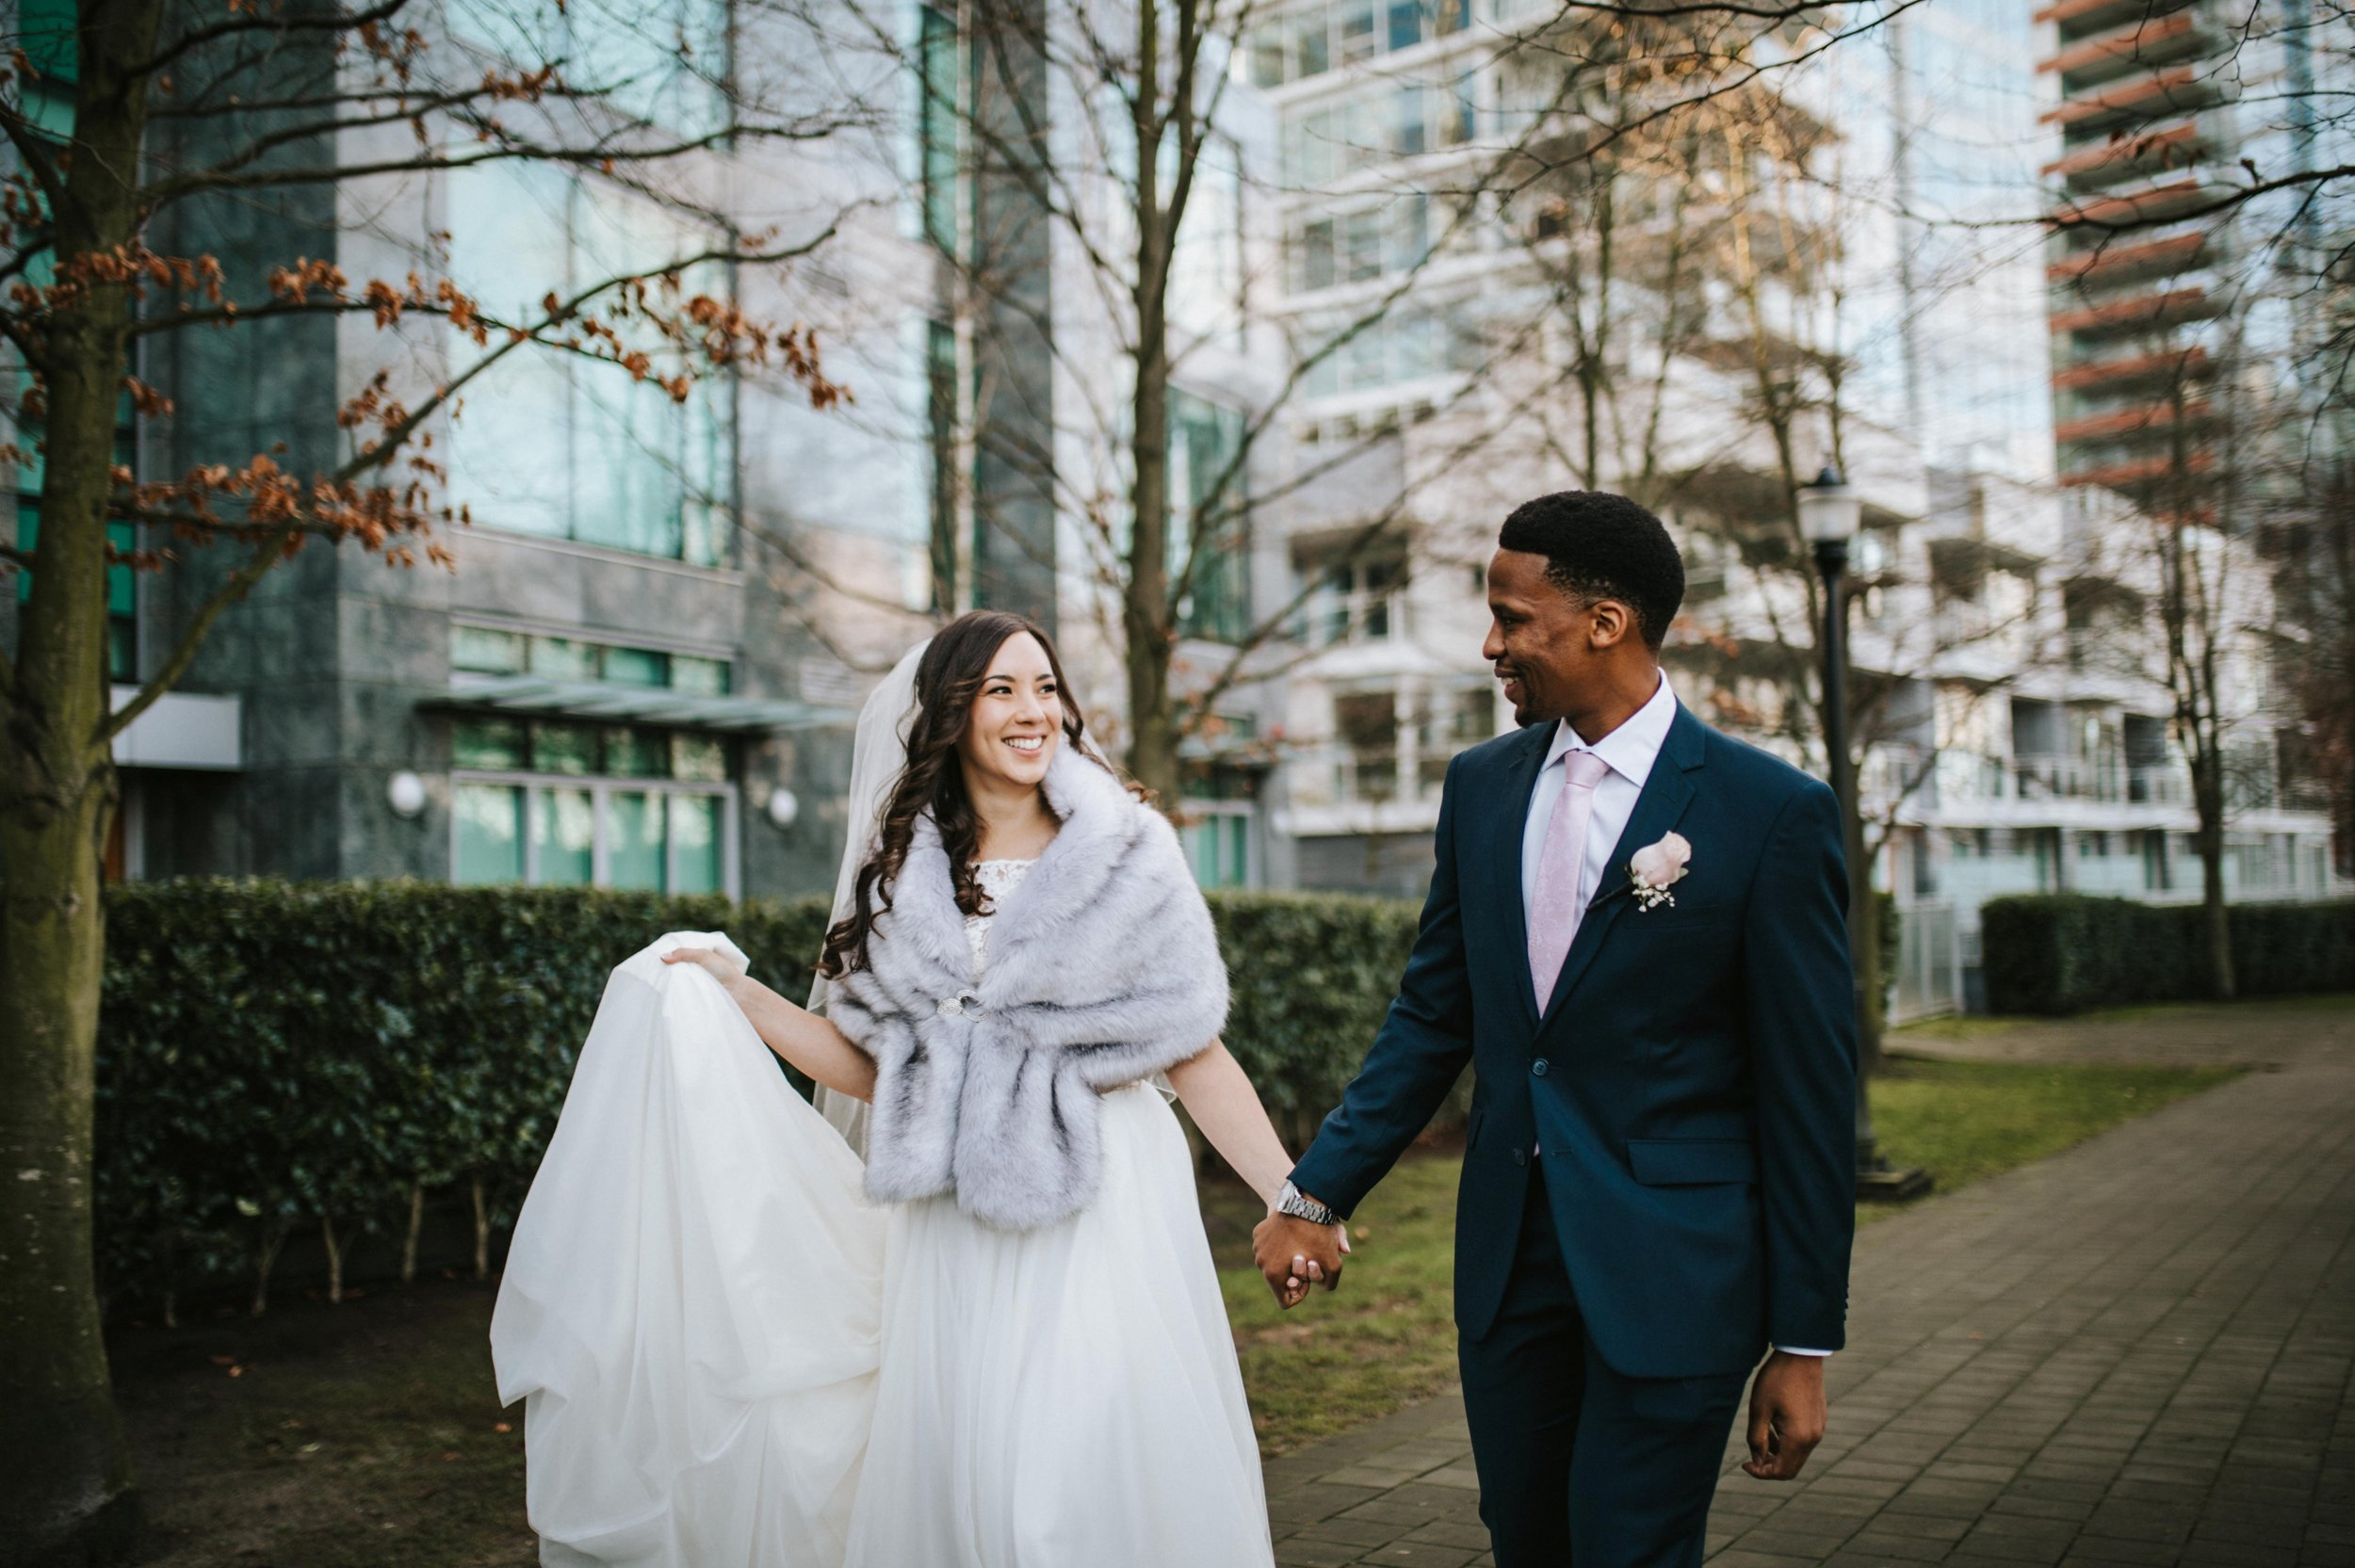 Jacqueline and Tshire 21.jpg